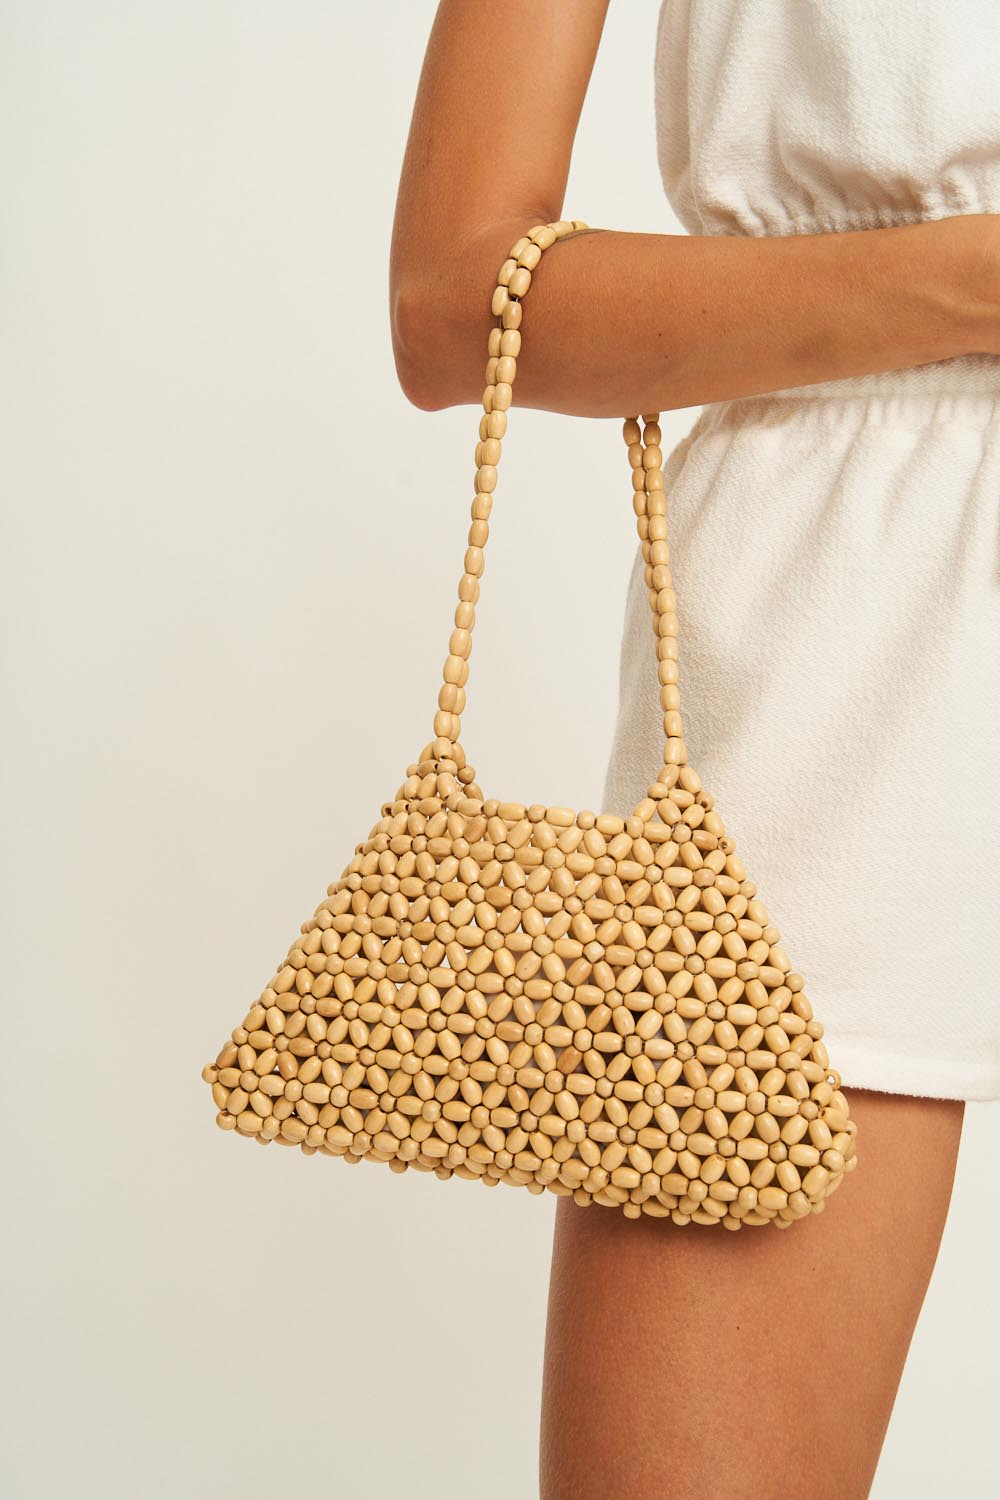 Coco Beaded Bag in Natural